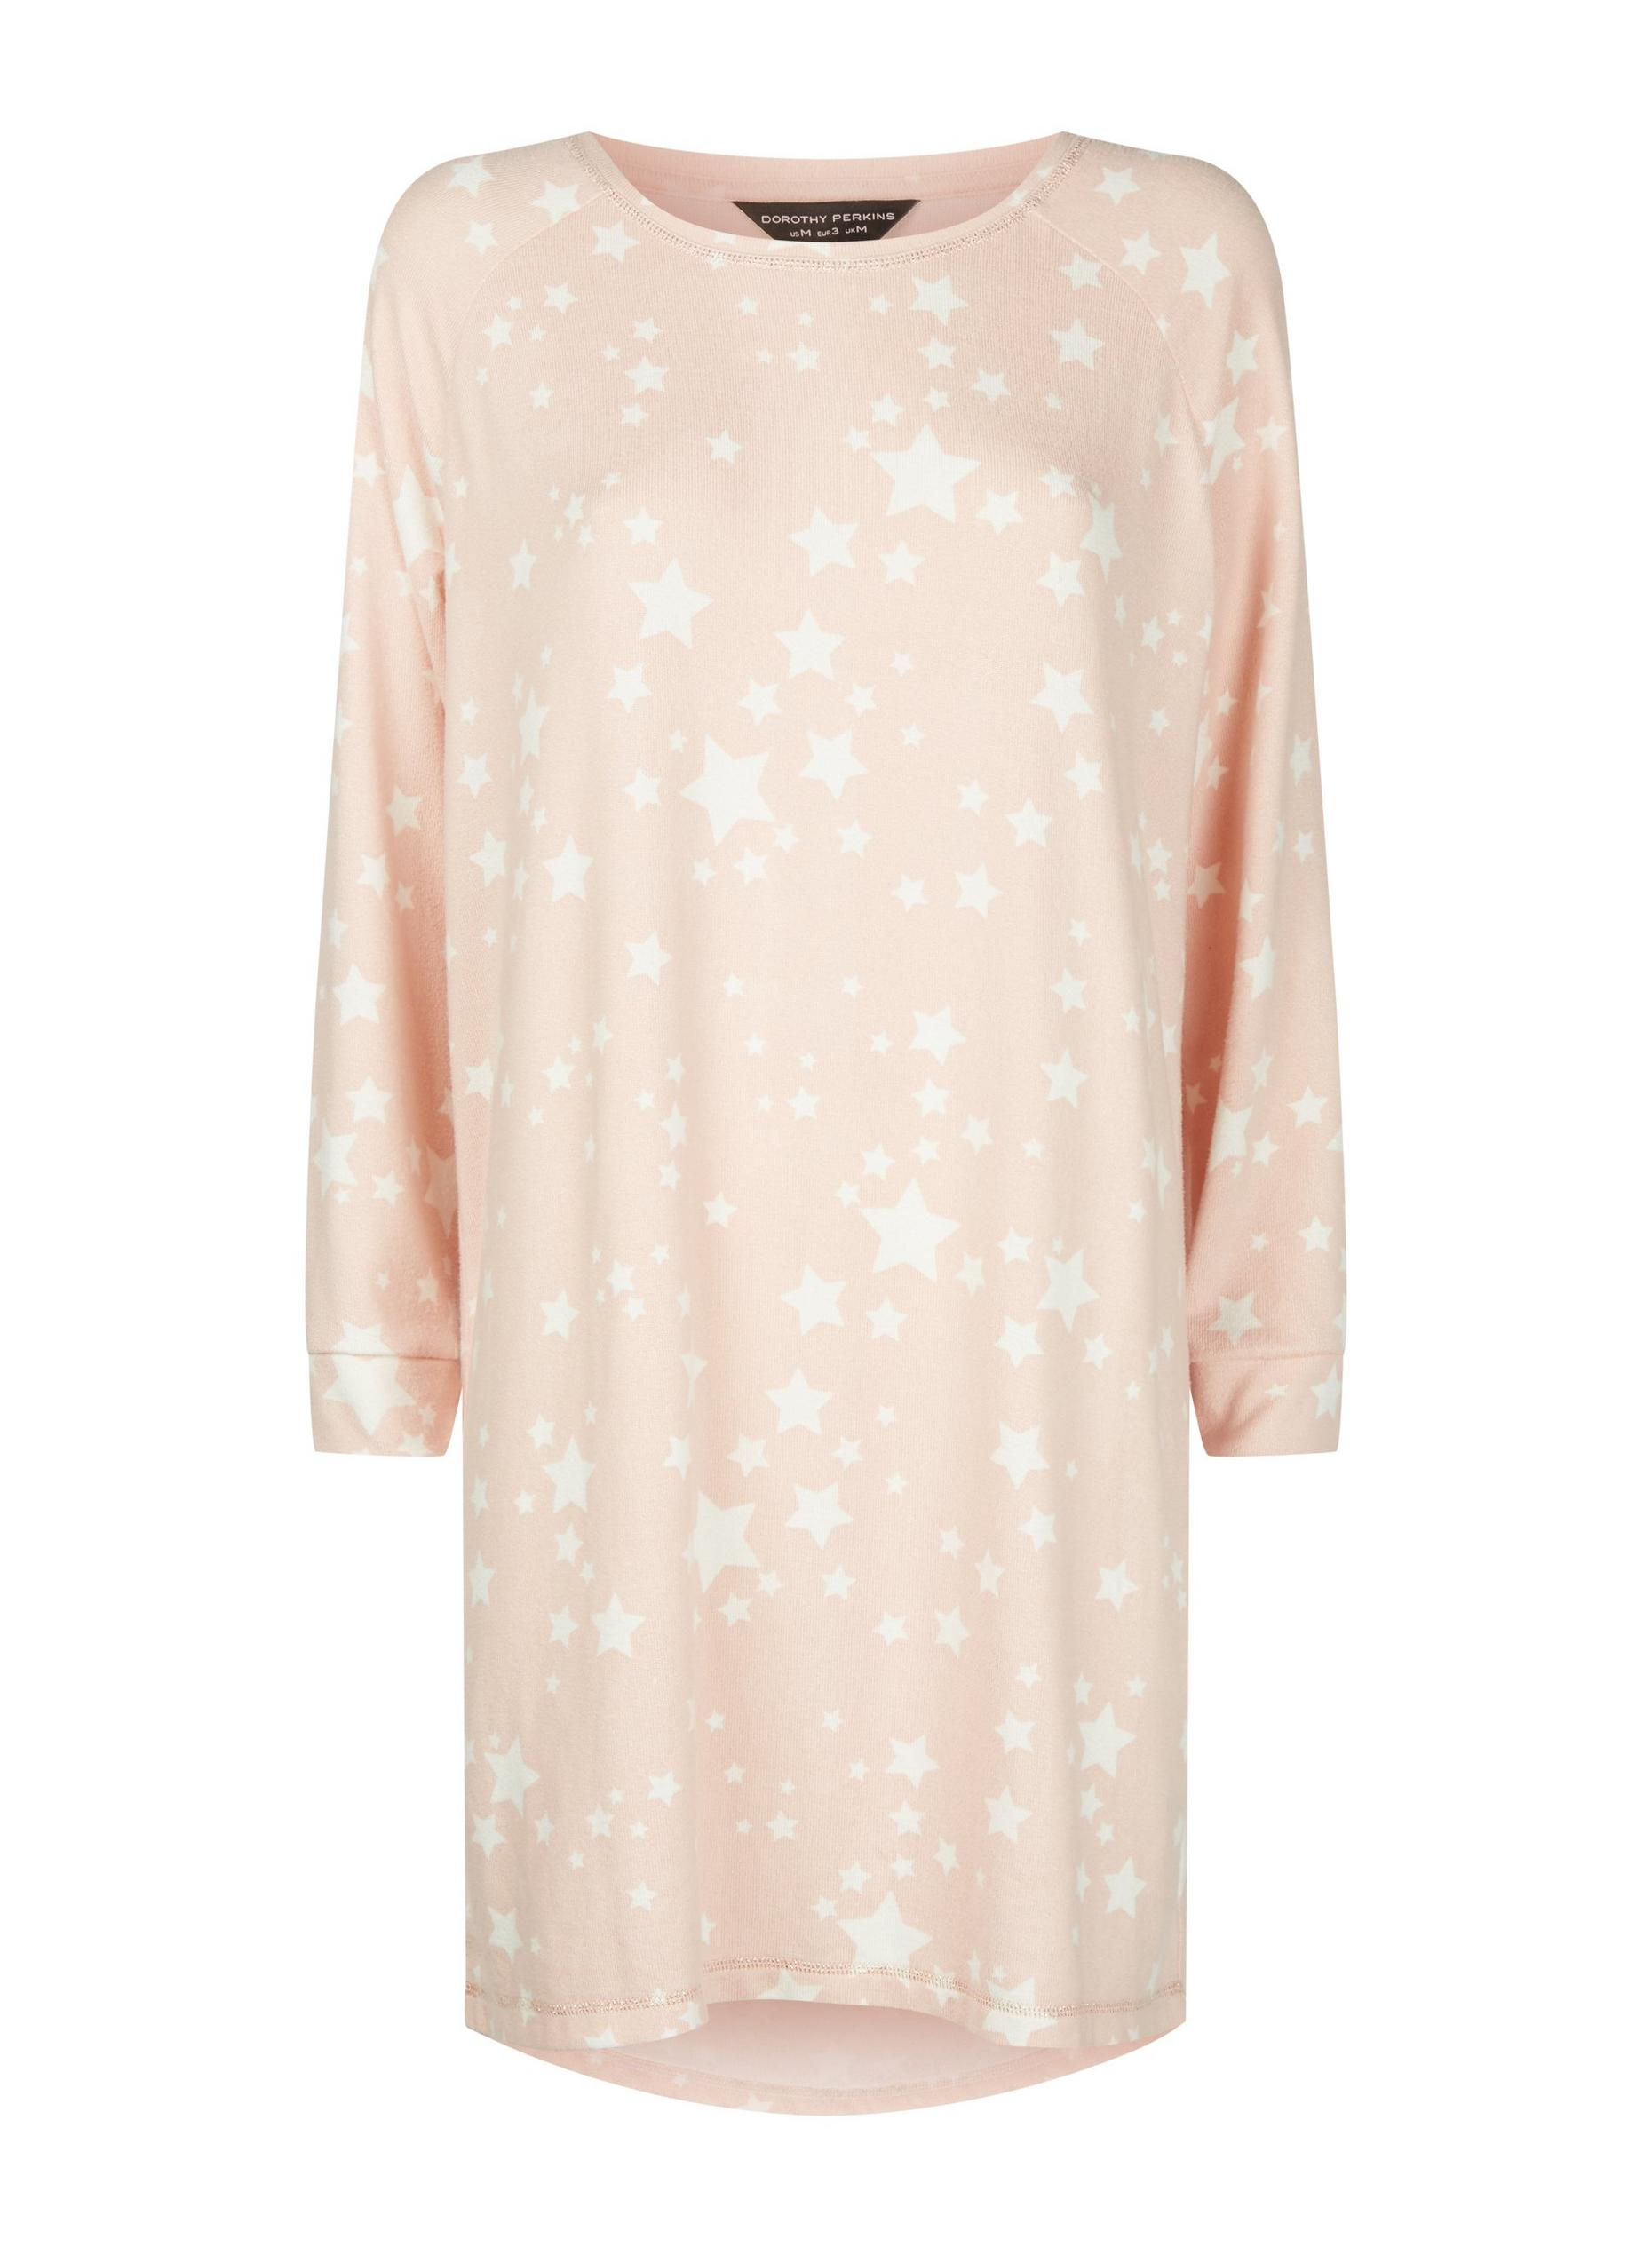 Star supersoft long sleeve nightie